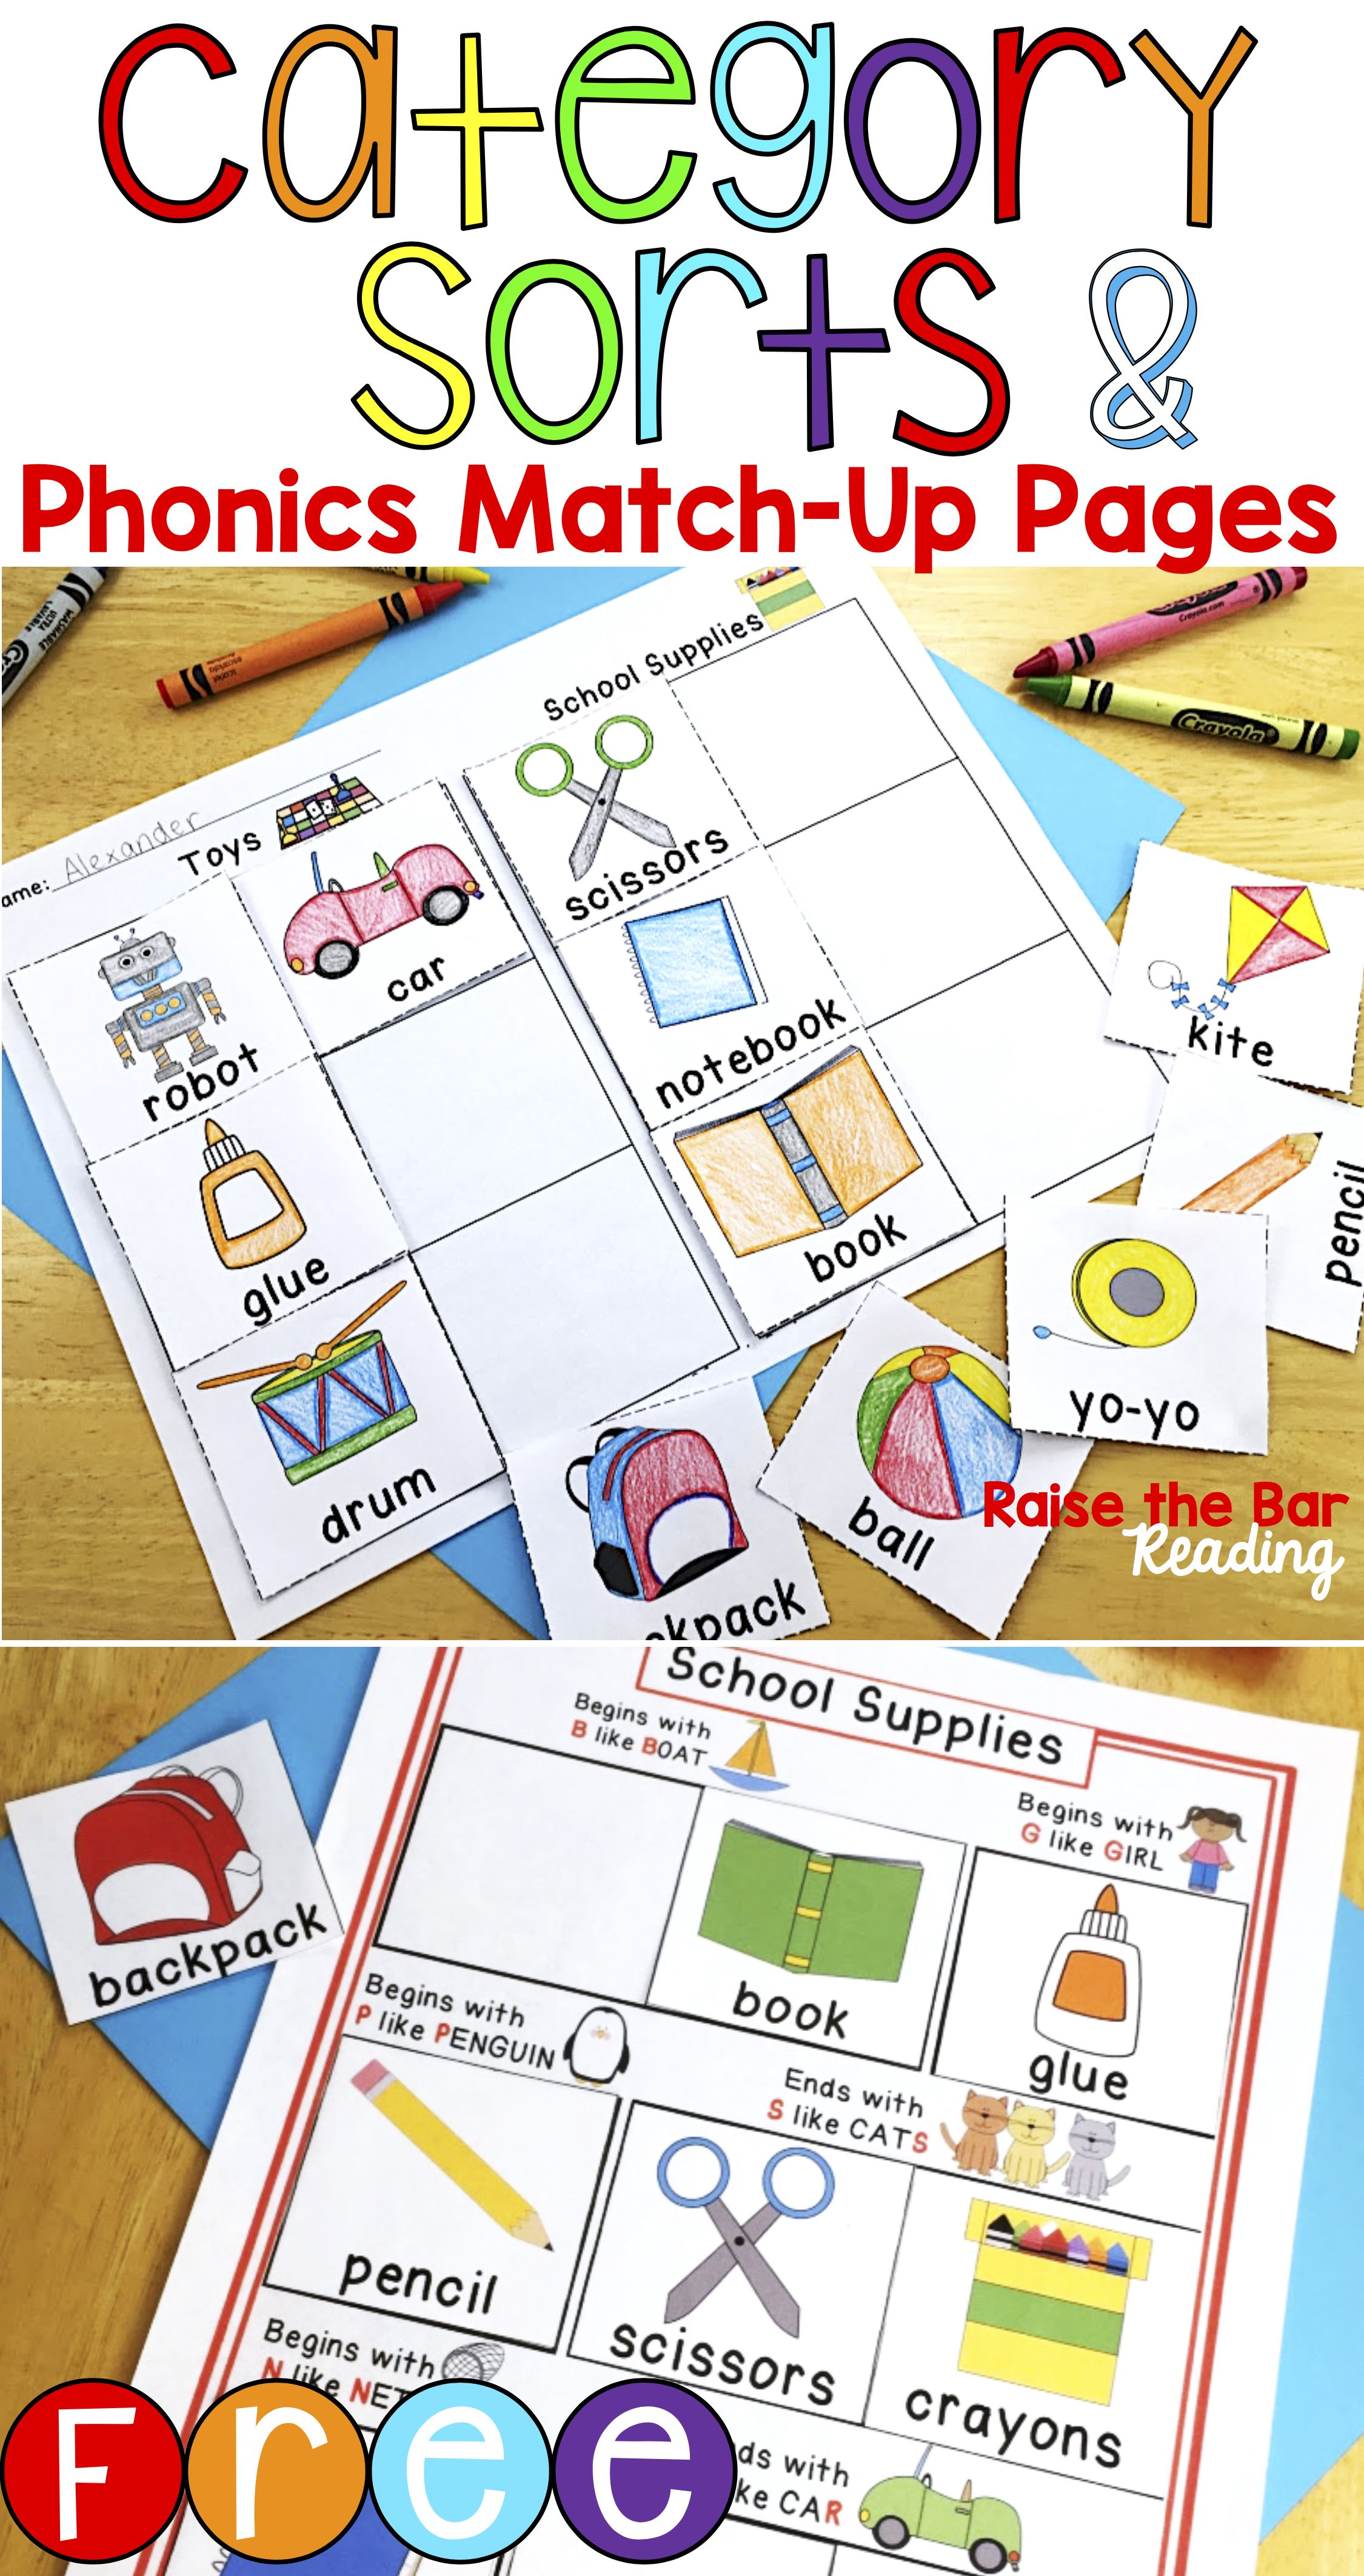 Free Category Sort Toys School Supplies Vocabulary Includes Sorting Cards Picture Only Or With Word Sorting Phonics Phonics Centers Phonics Printables [ 4250 x 2250 Pixel ]